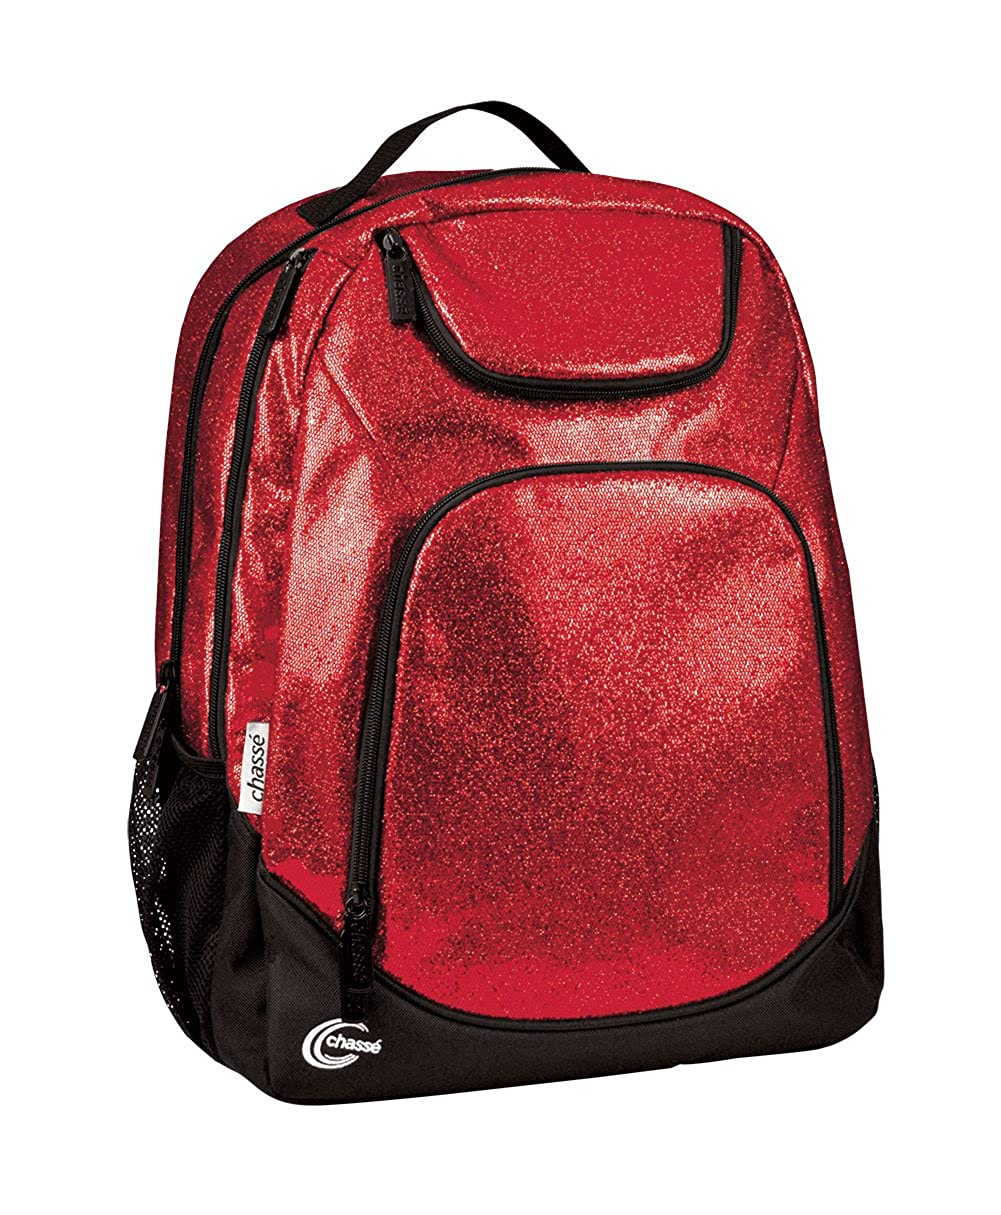 f5fc4d7d72 Chassé spotlight glitter backpack clothing jpg 1001x1215 Red cheerleading  bookbags